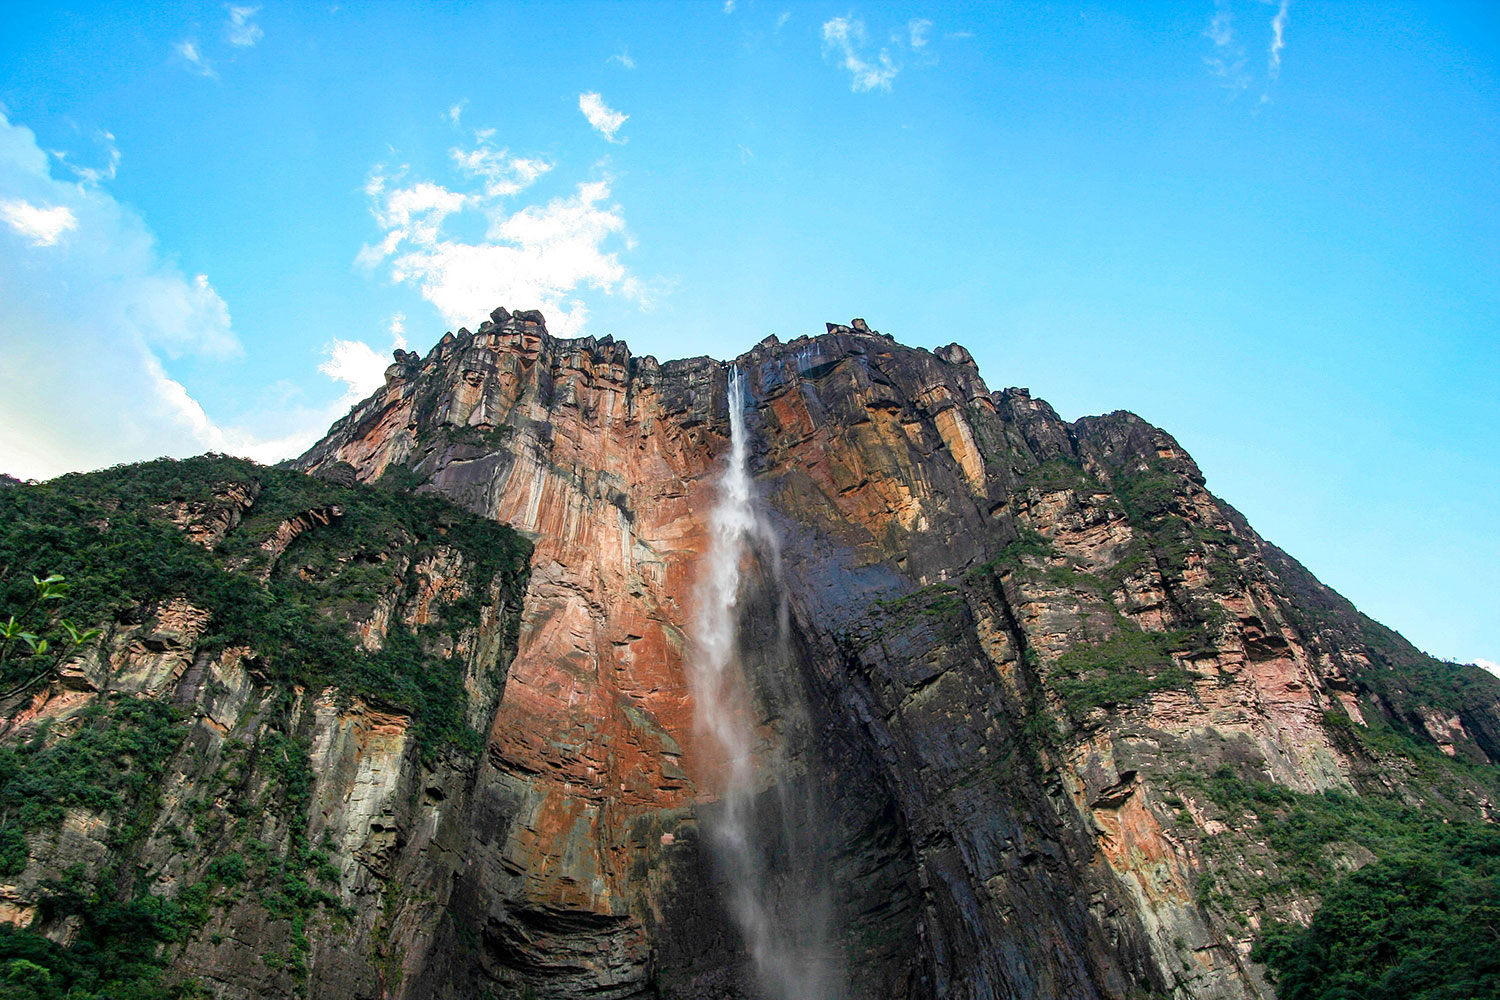 An upward view of a tall waterfall in Venezuela